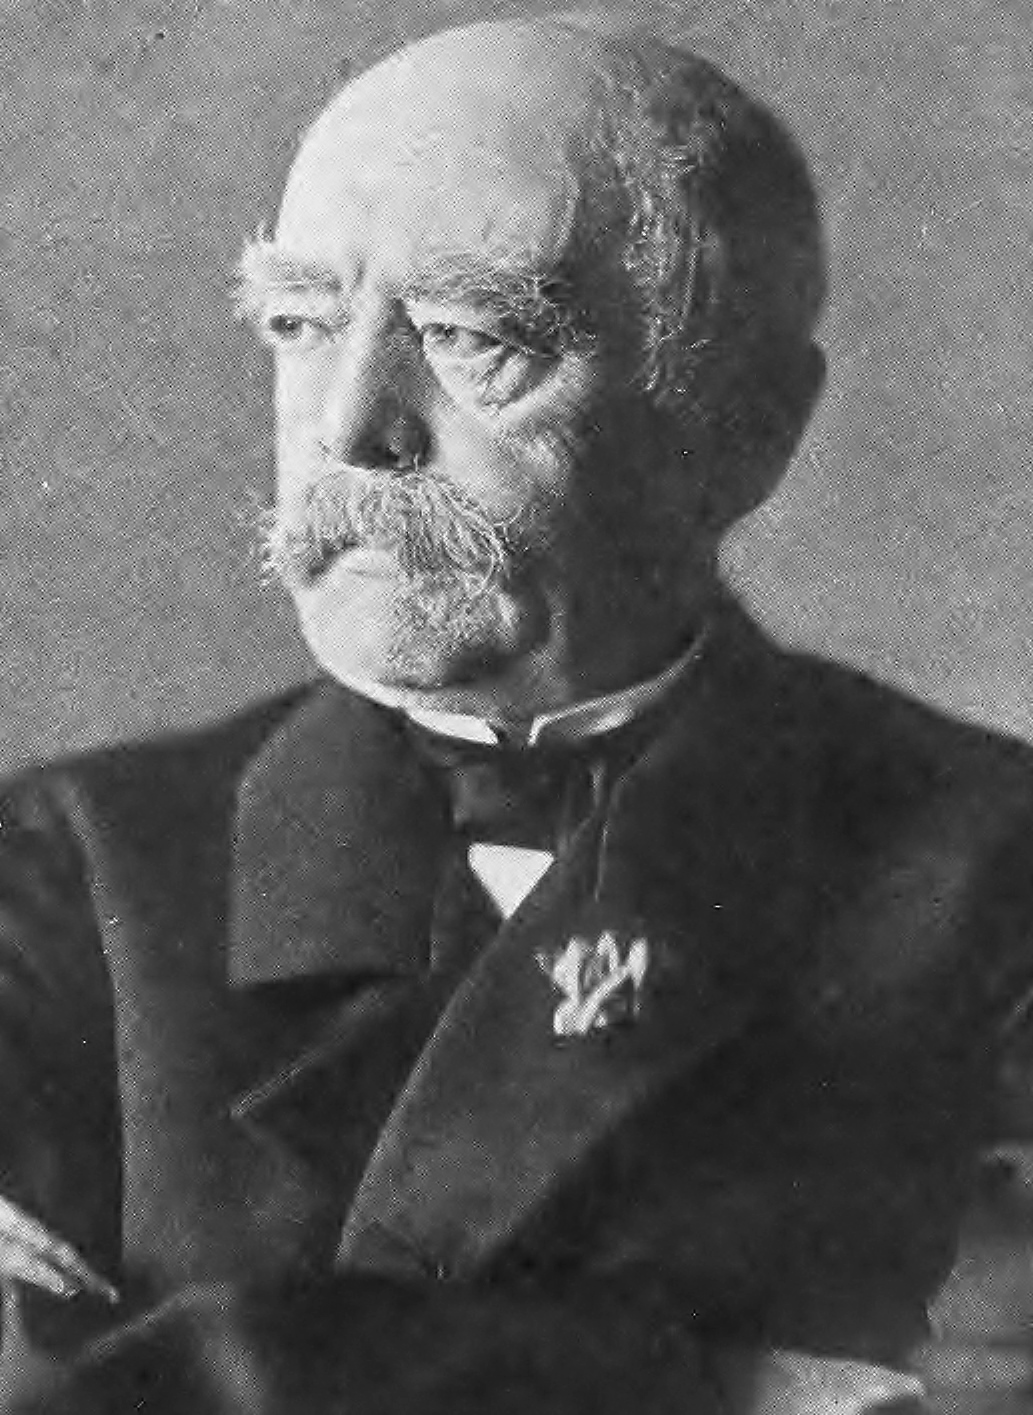 otto von bismarck s achievements How has bismarck escaped most of the blame for the first world war otto von bismarck bismarck's reich pioneered the modern welfare state.